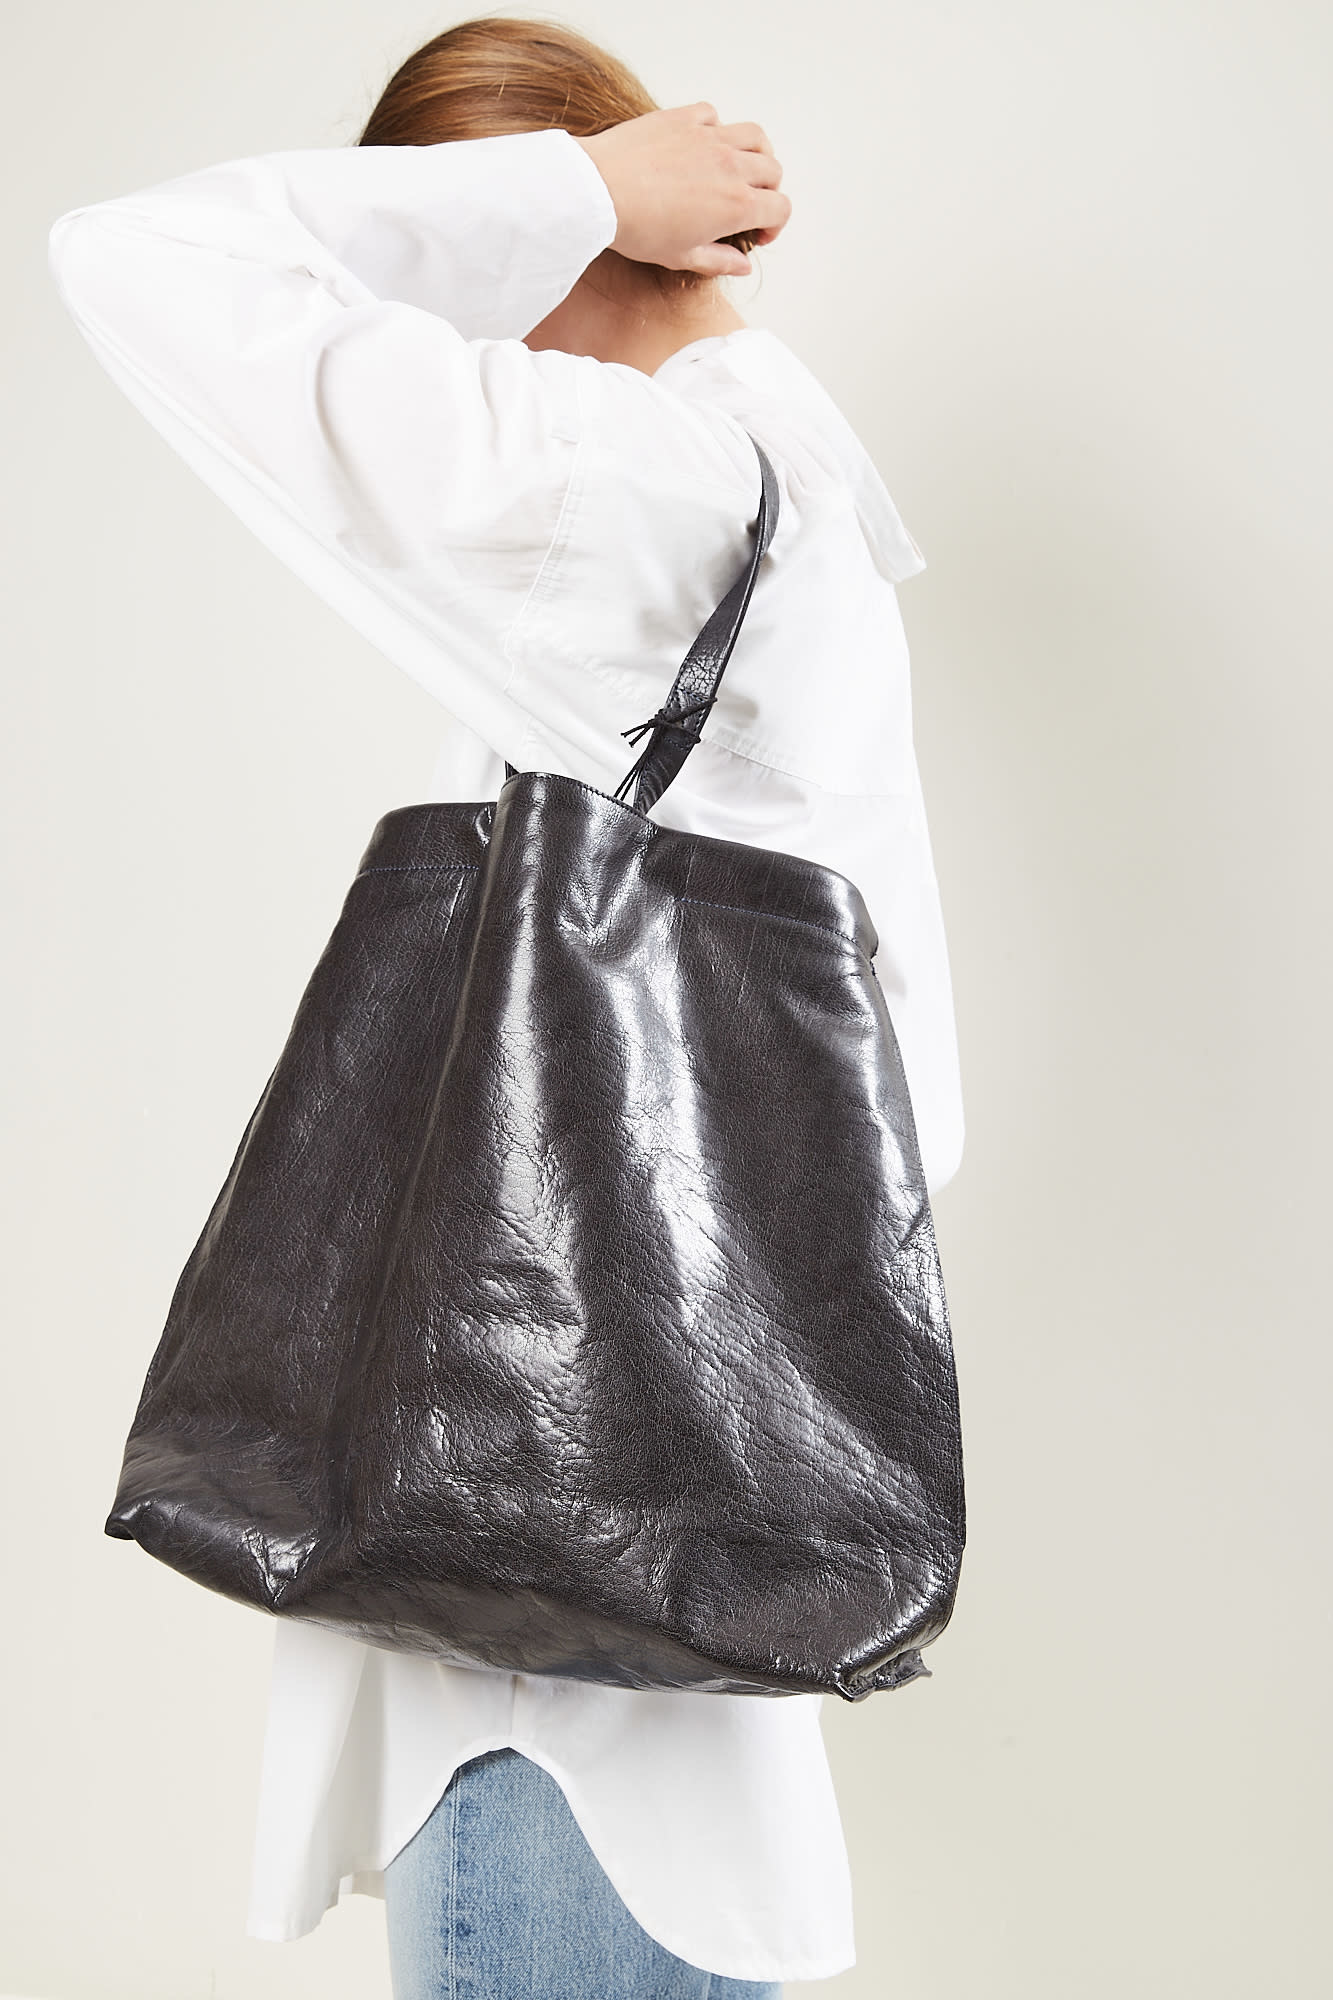 Bea Mombaers - Shopper black